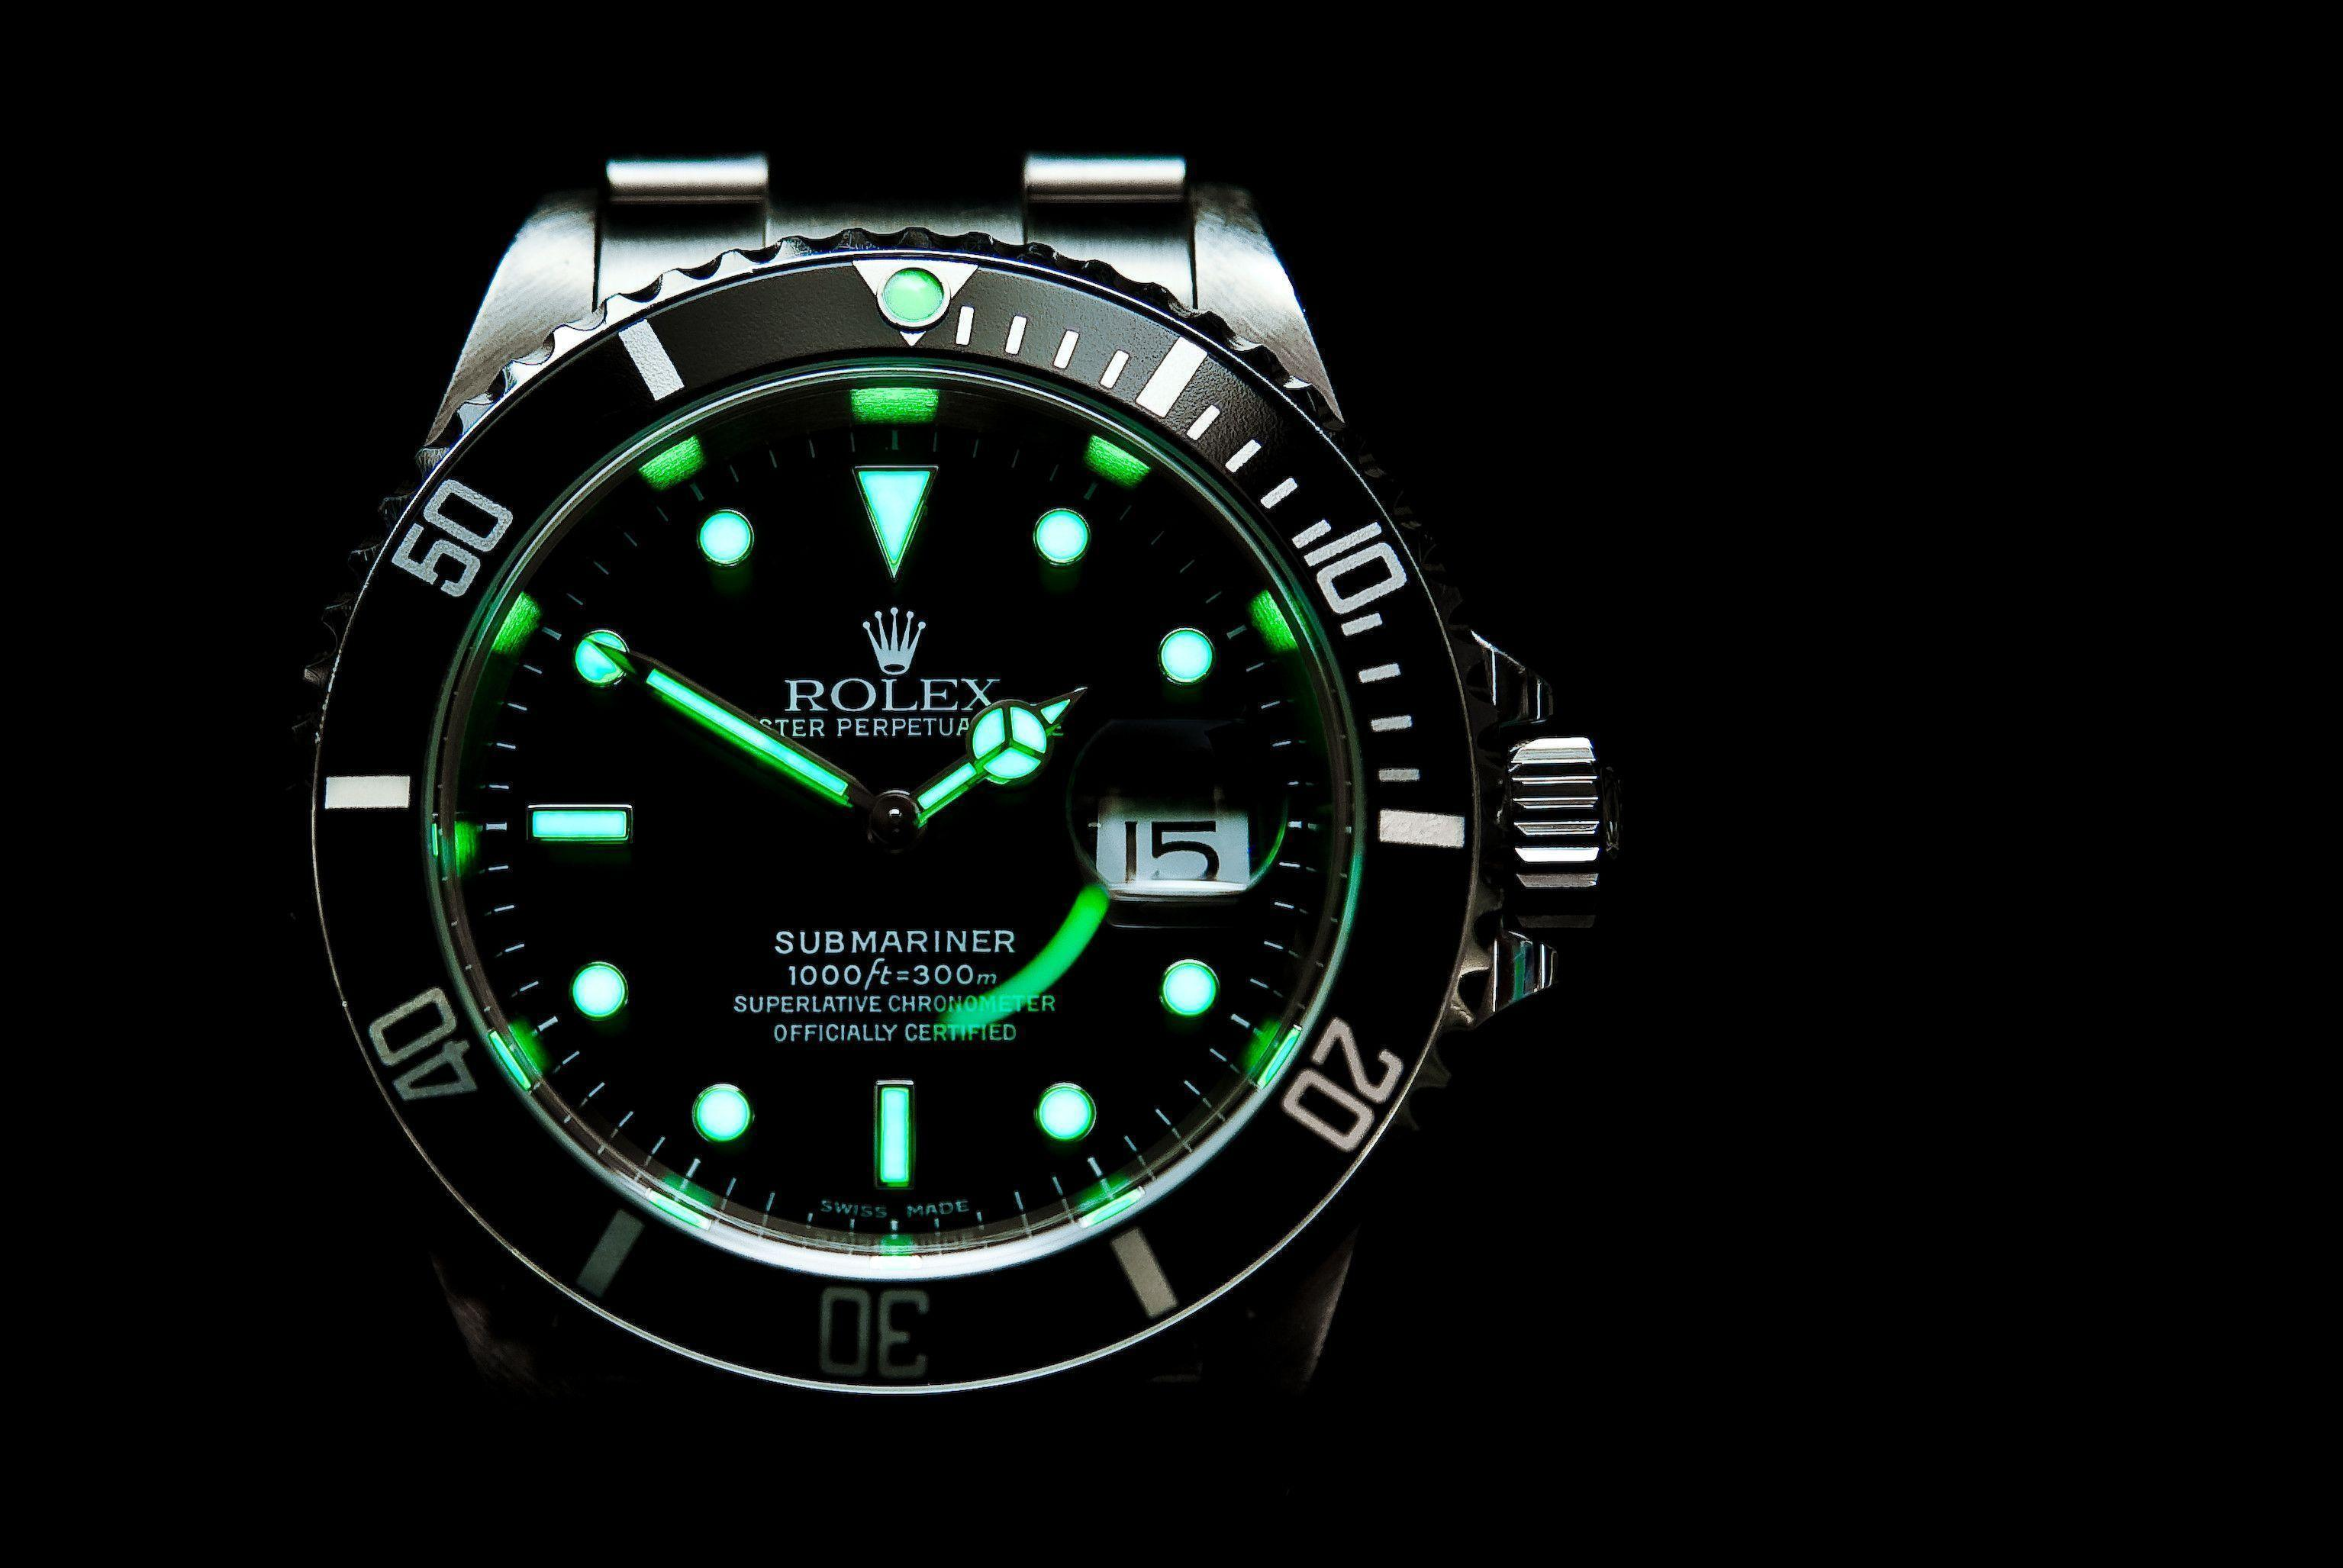 Rolex Wallpapers Wallpaper Cave HD Wallpapers Download Free Images Wallpaper [1000image.com]